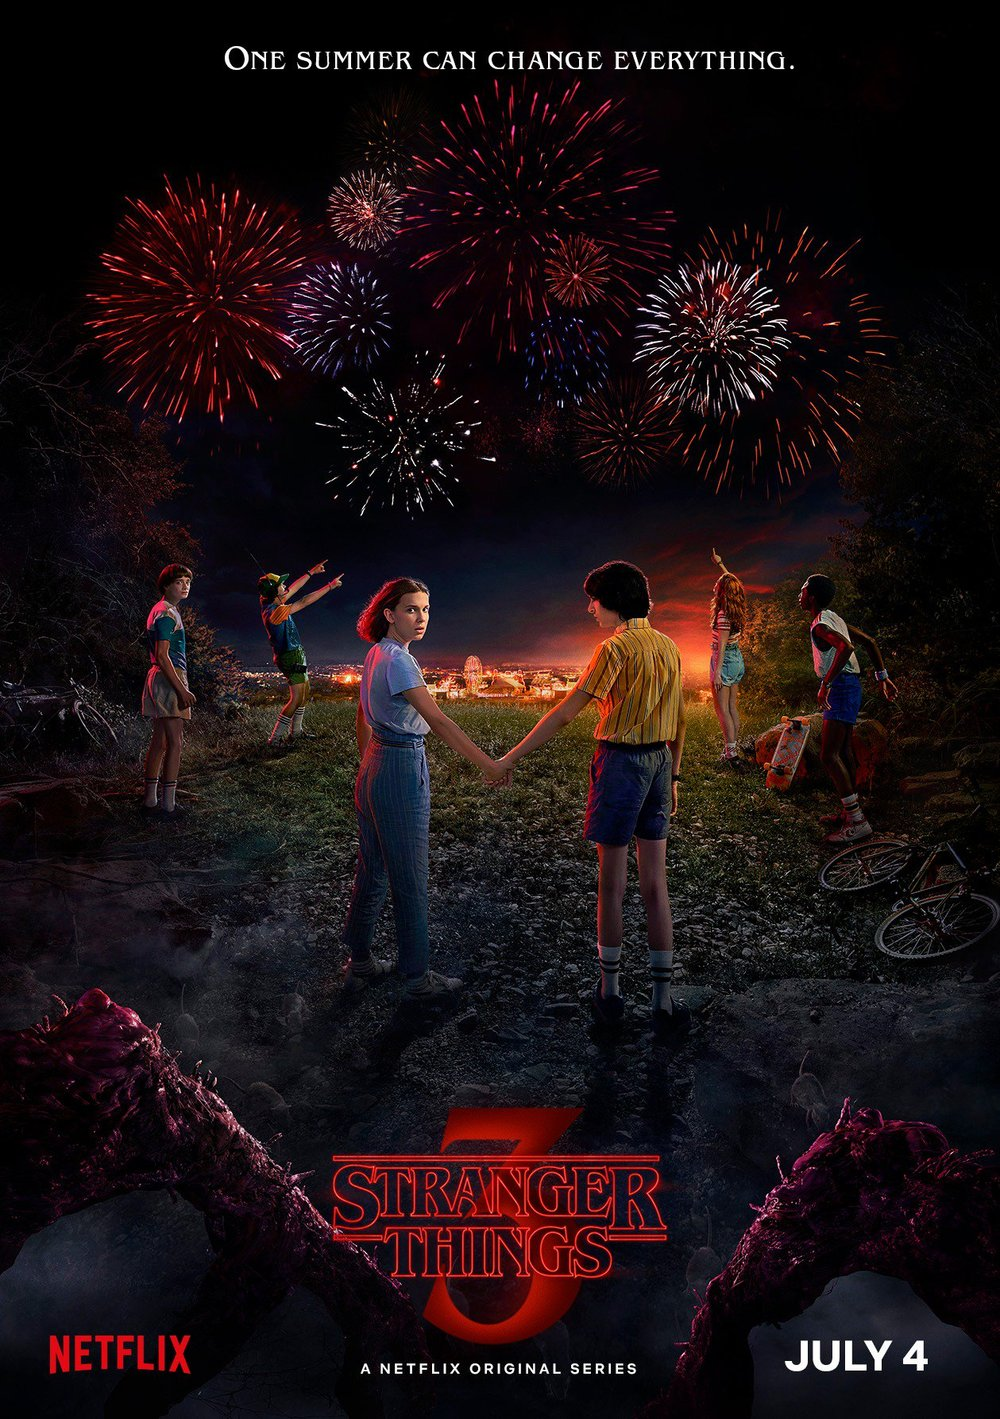 netflix-announces-stranger-things-season-3-premiere-date-in-new-promo-video-and-poster1